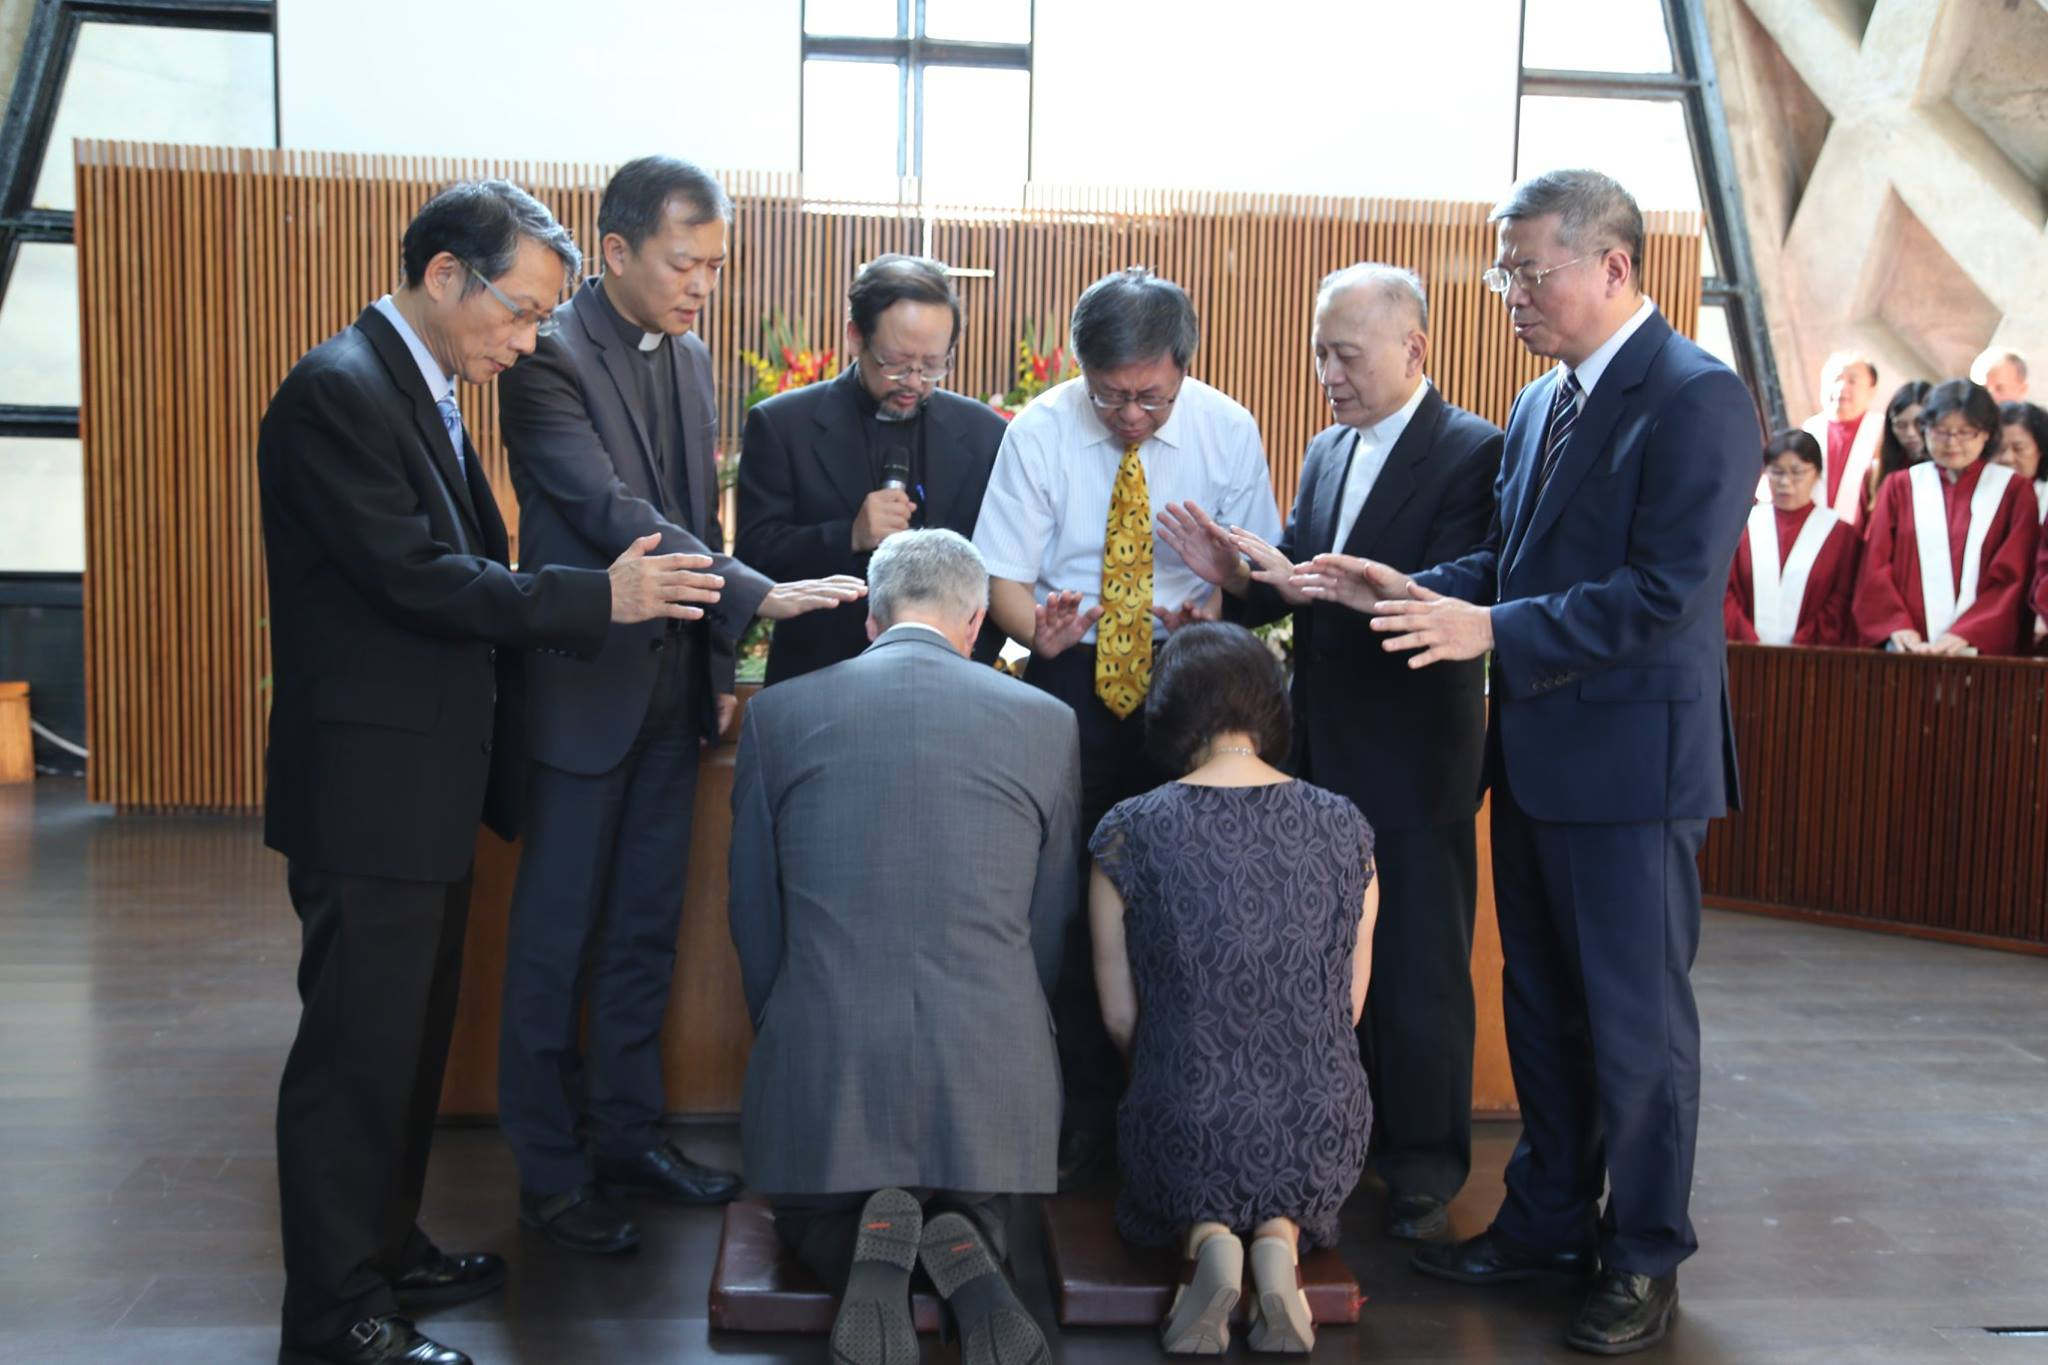 Inaugural Worship Ceremony for Tunghai's Pastor David Clotfelter